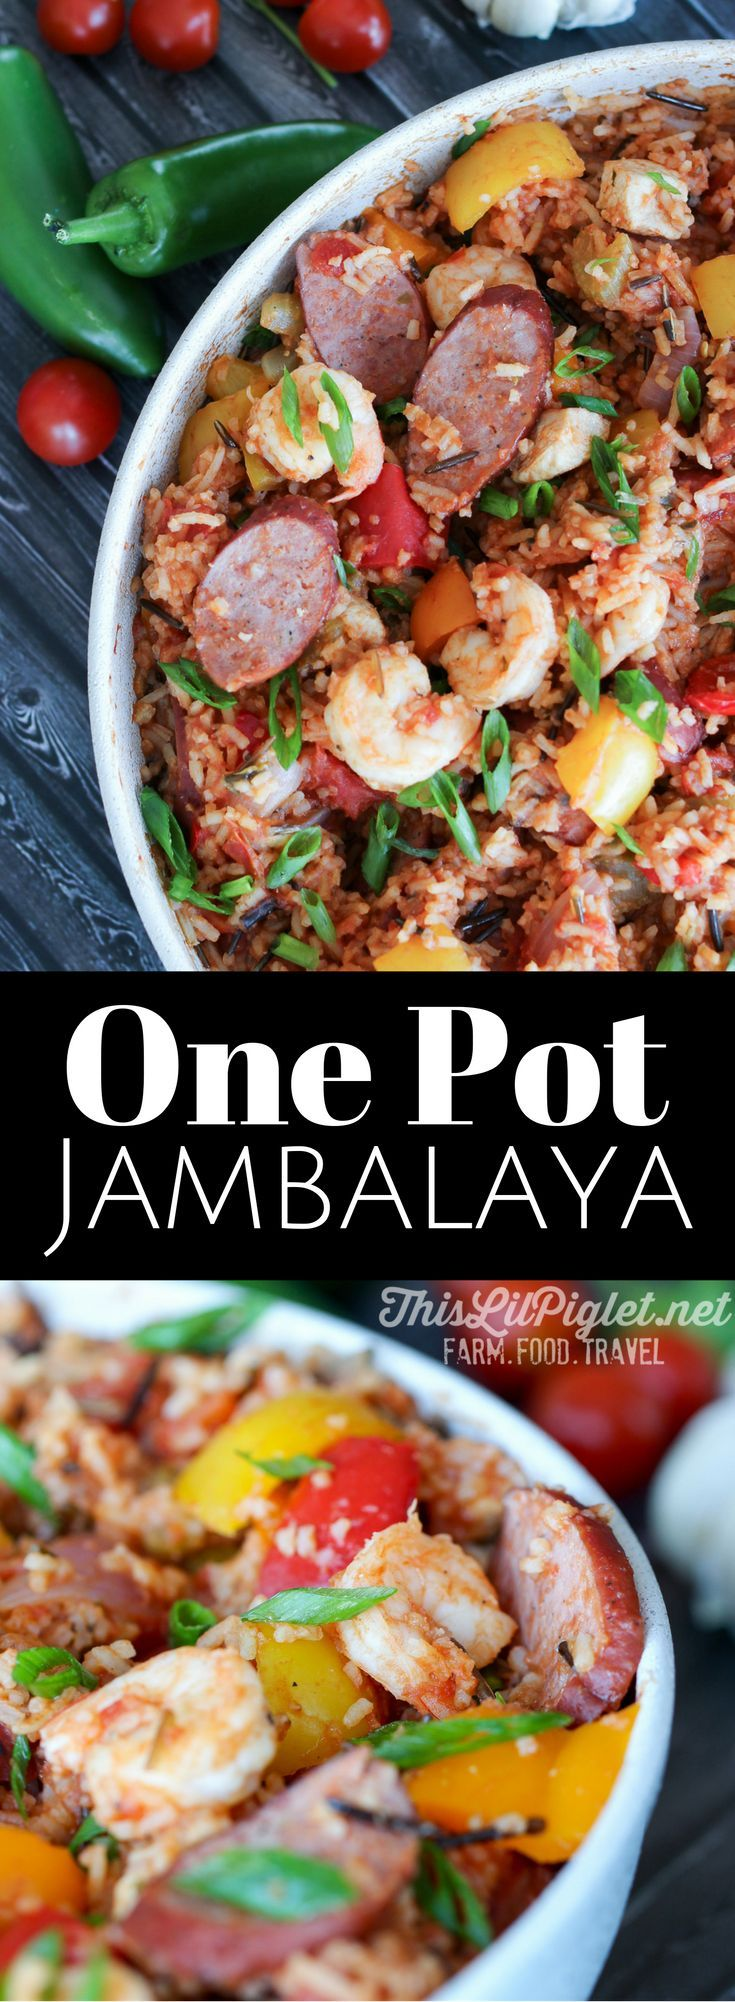 One Pot Meals: Jambalaya with Wild Rice, Chicken, Sausage and Shrimp - a delicious quick and easy meal idea // via @thislilpiglet